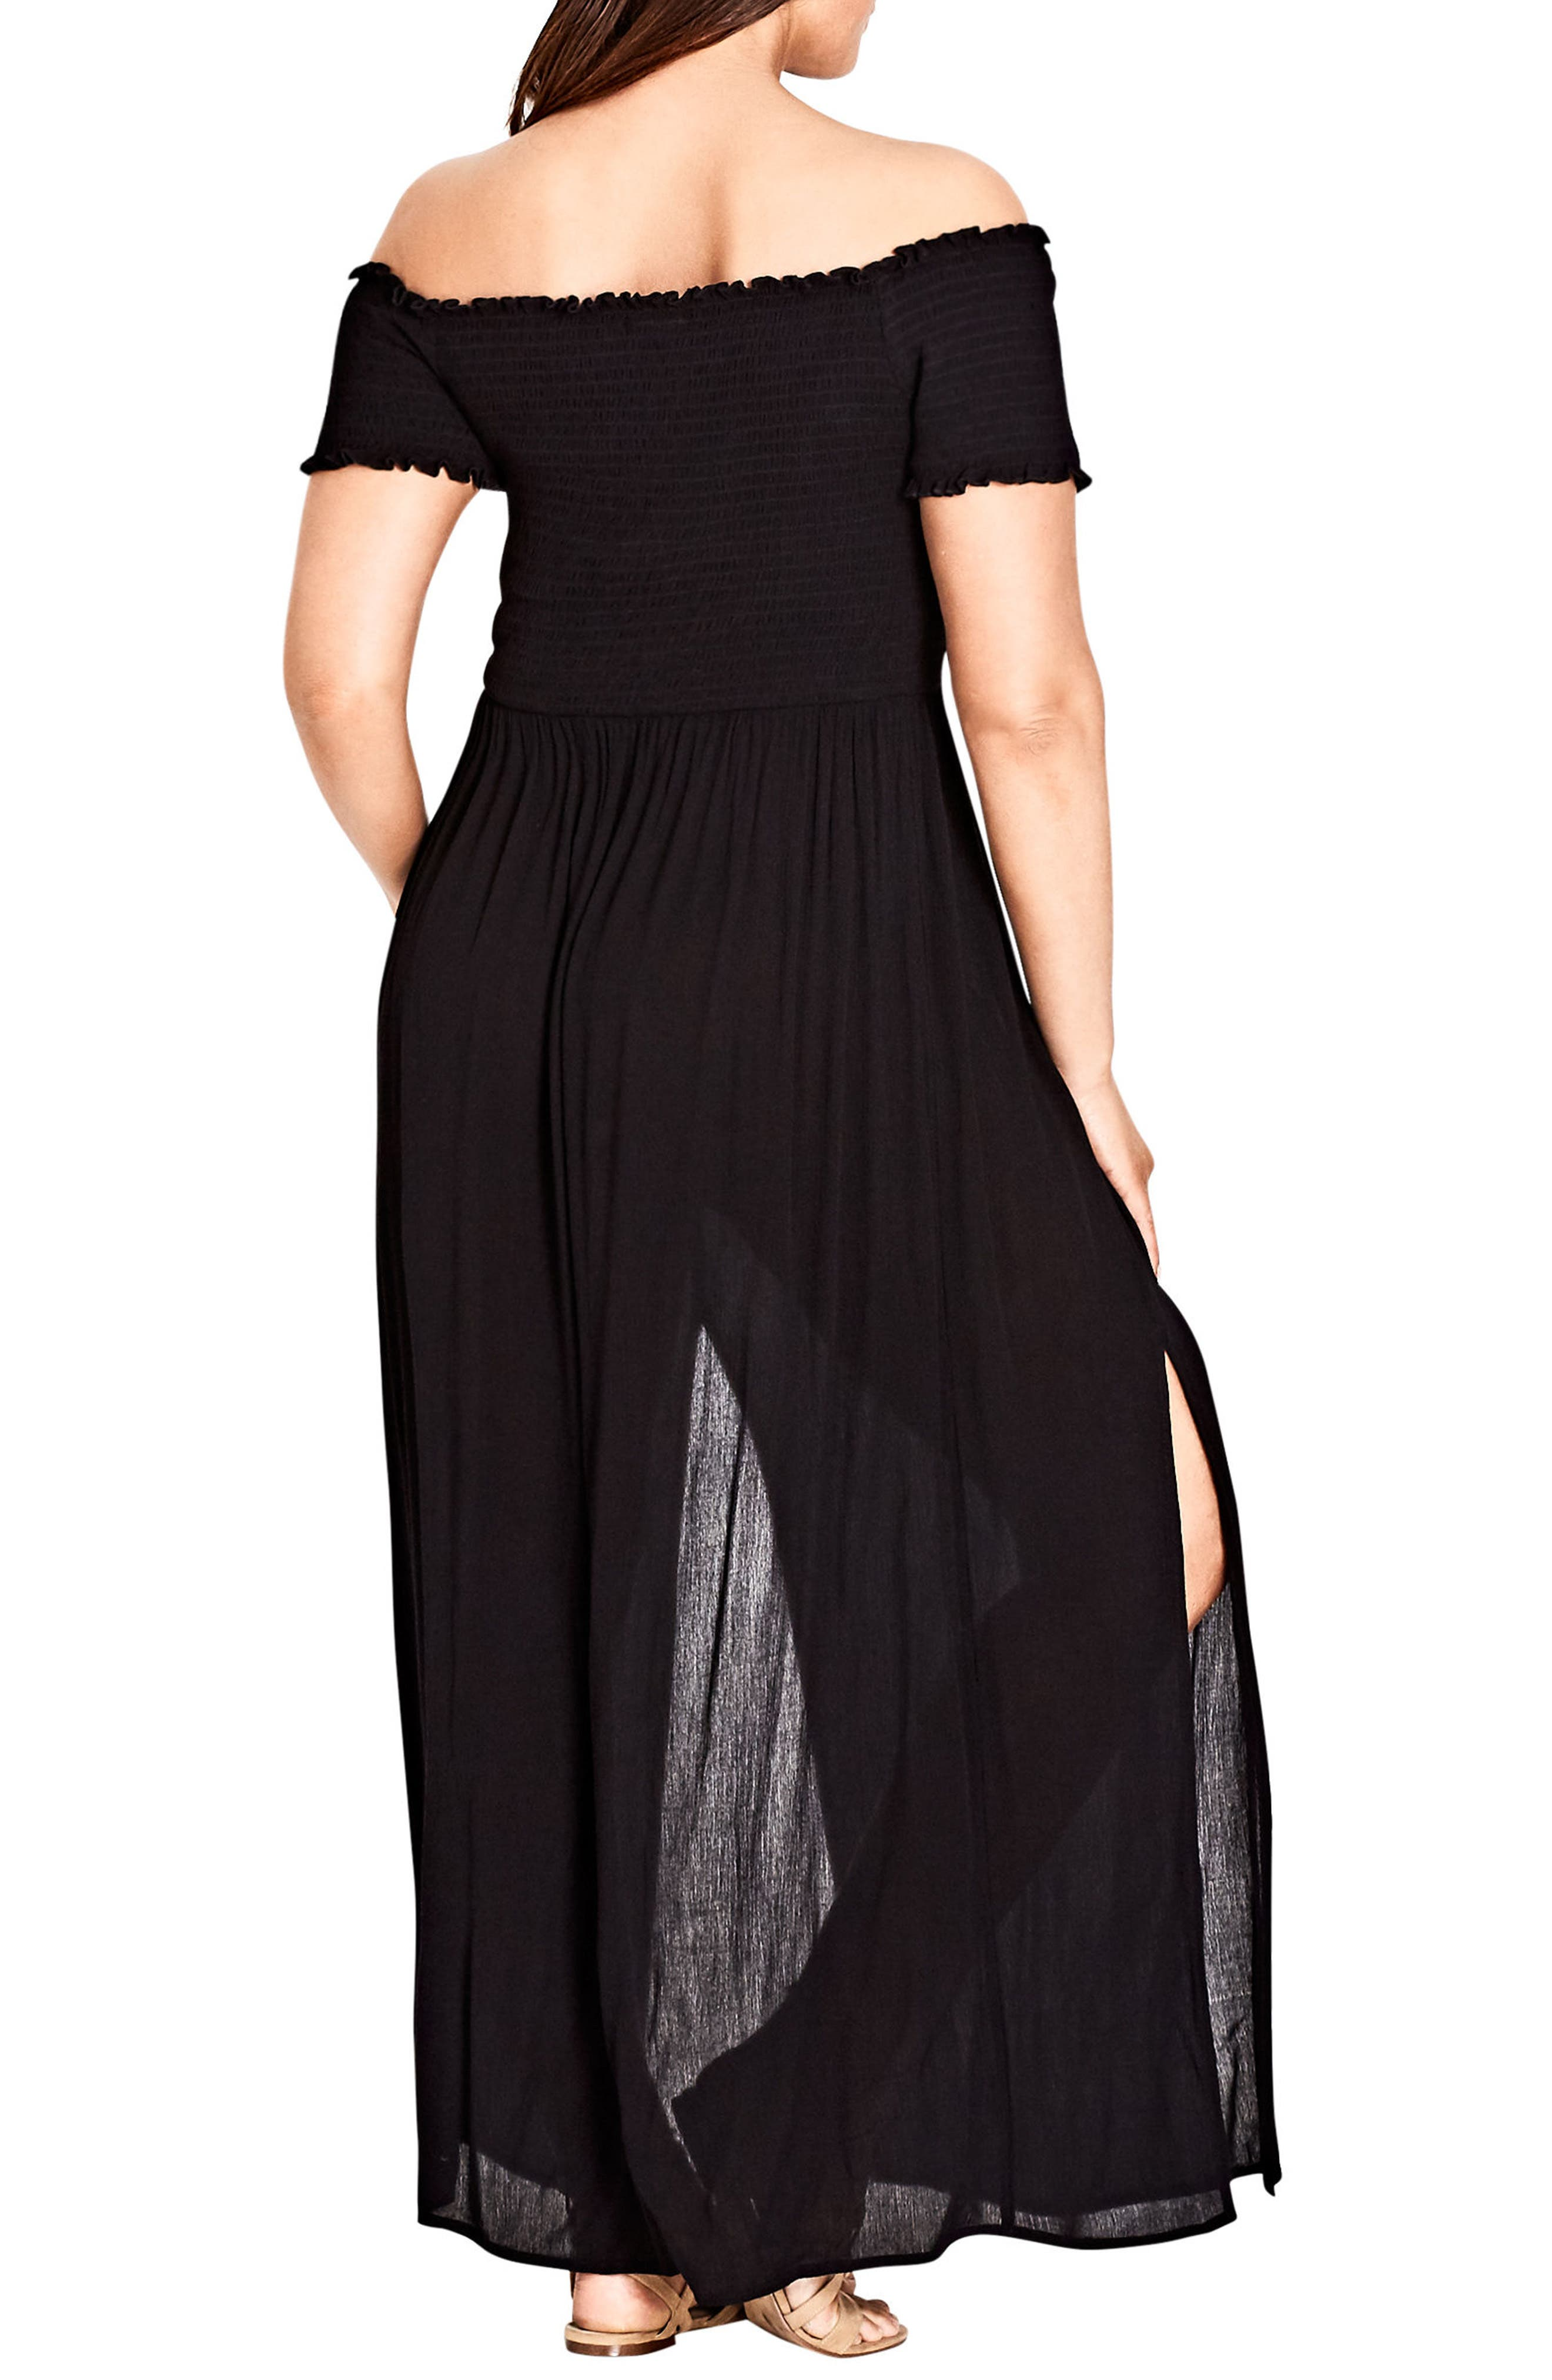 Smocked Off the Shoulder Maxi Dress,                             Alternate thumbnail 2, color,                             Black